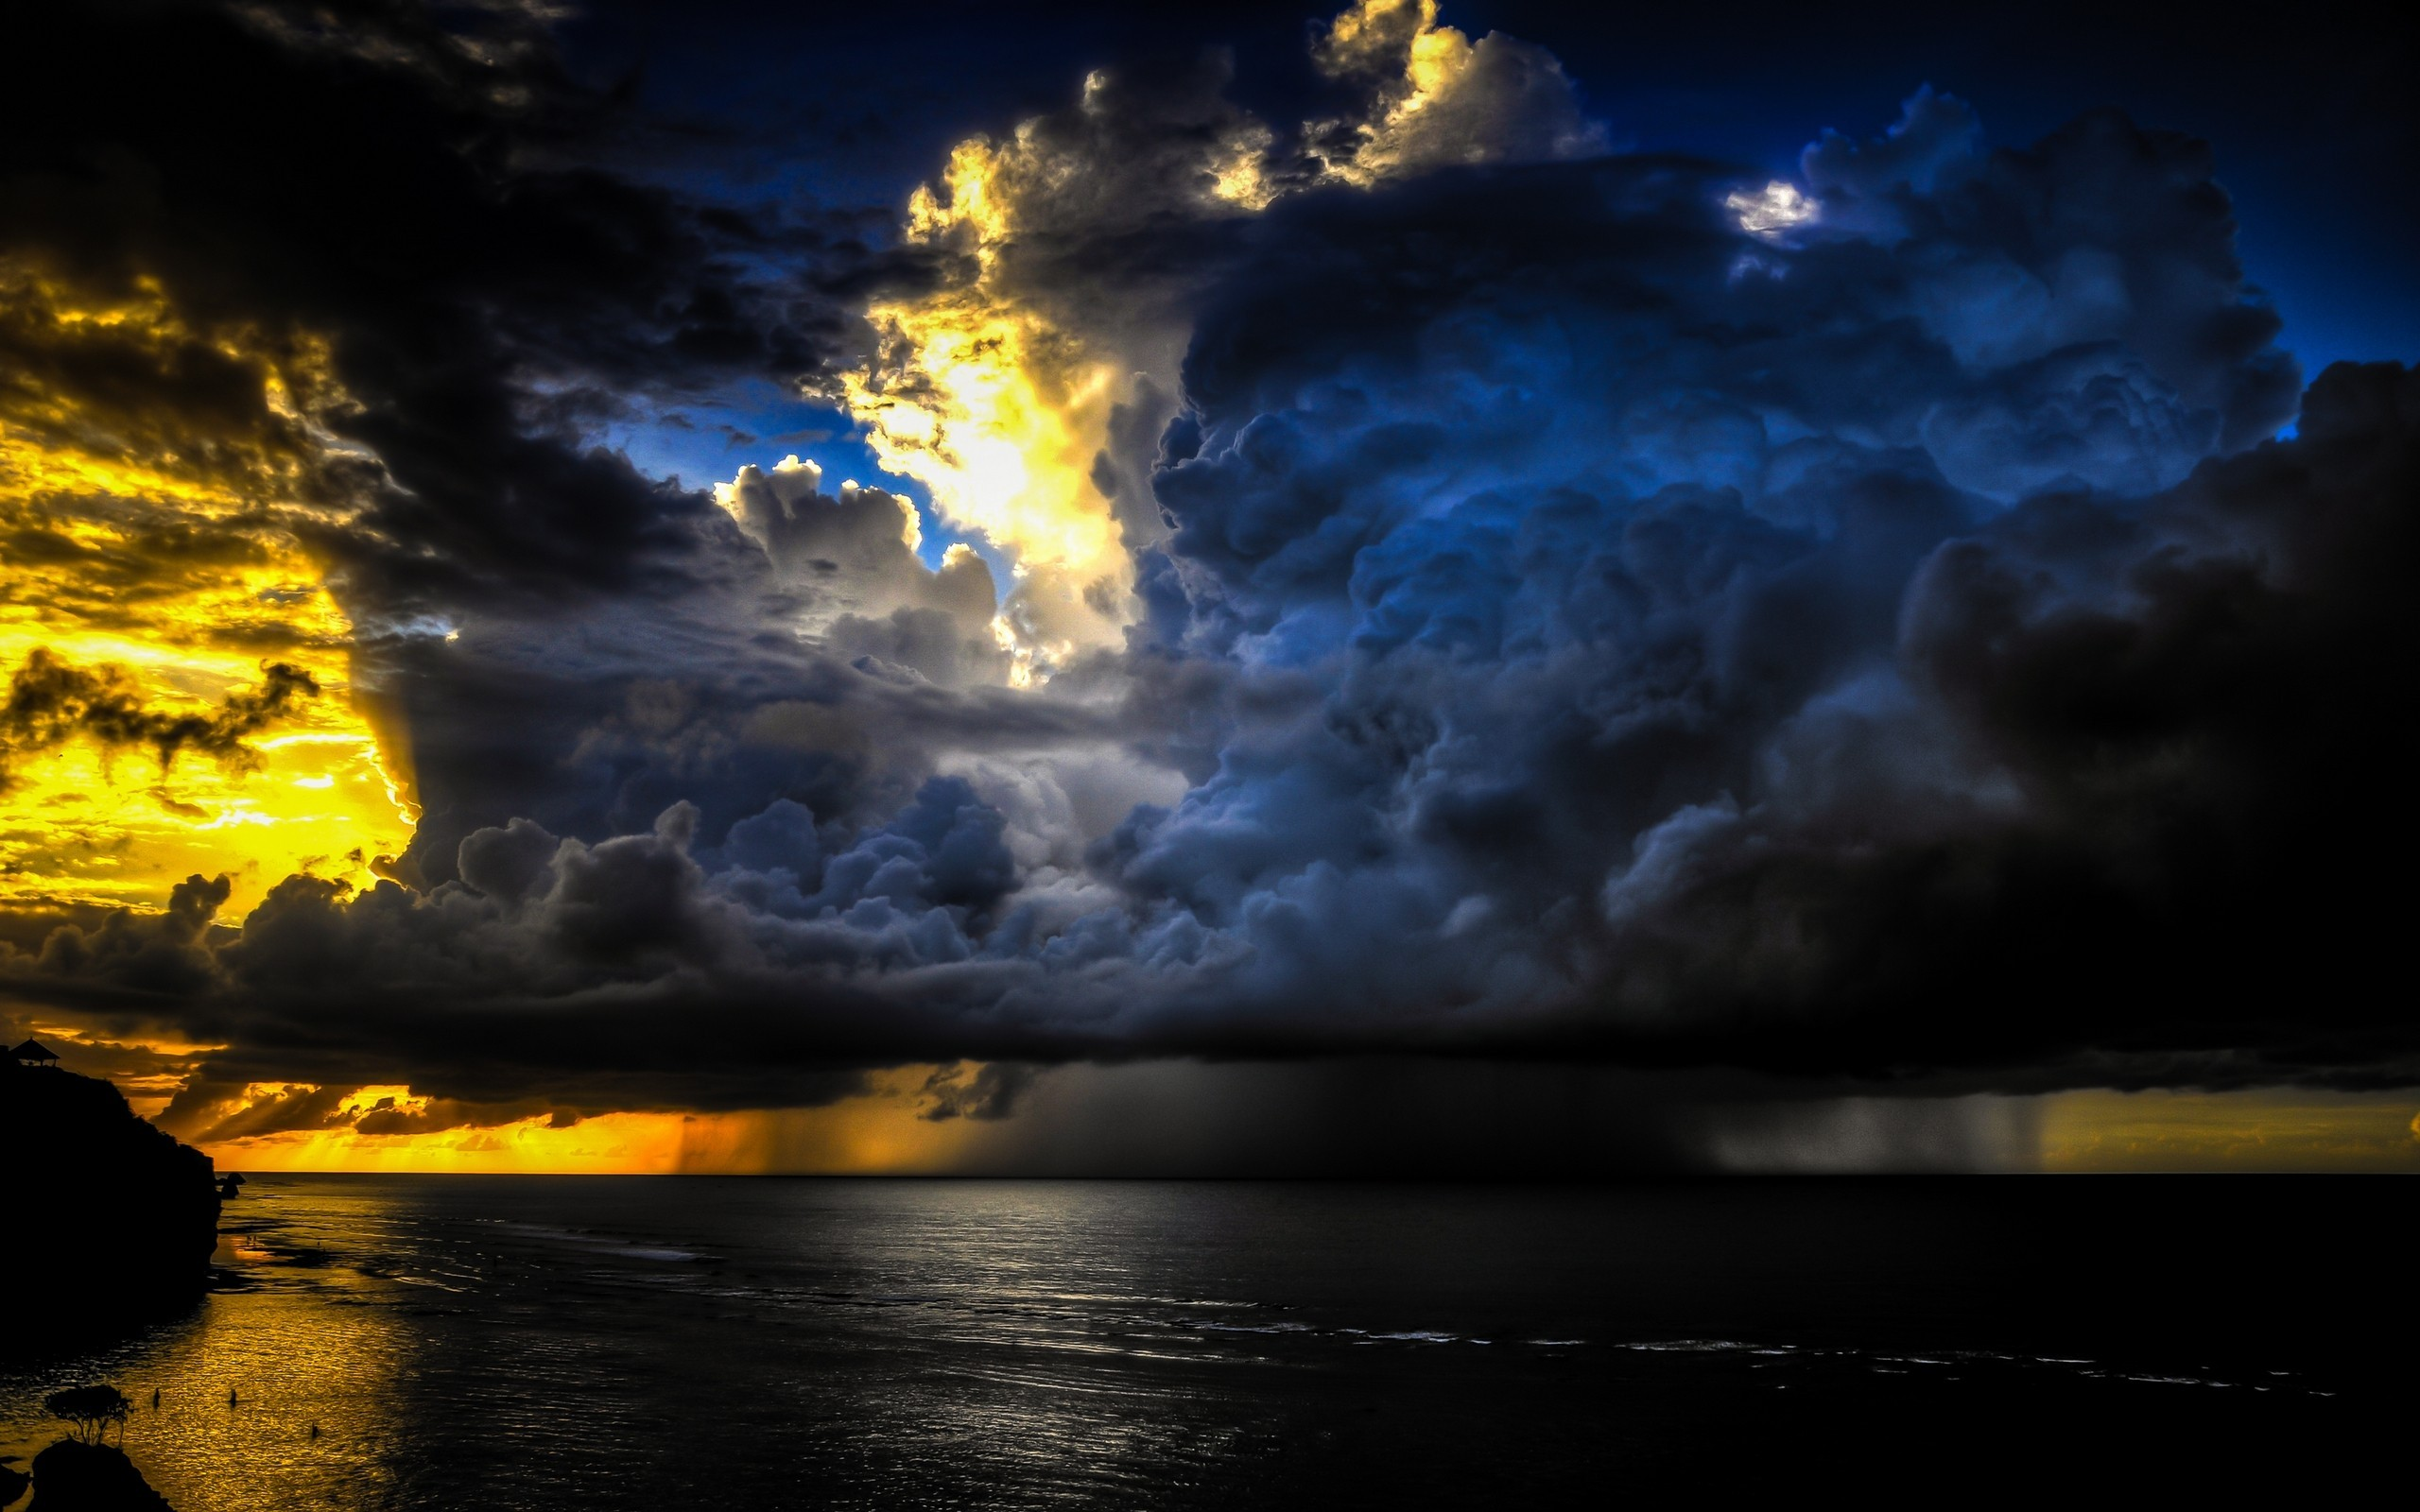 156 Storm HD Wallpapers | Backgrounds - Wallpaper Abyss